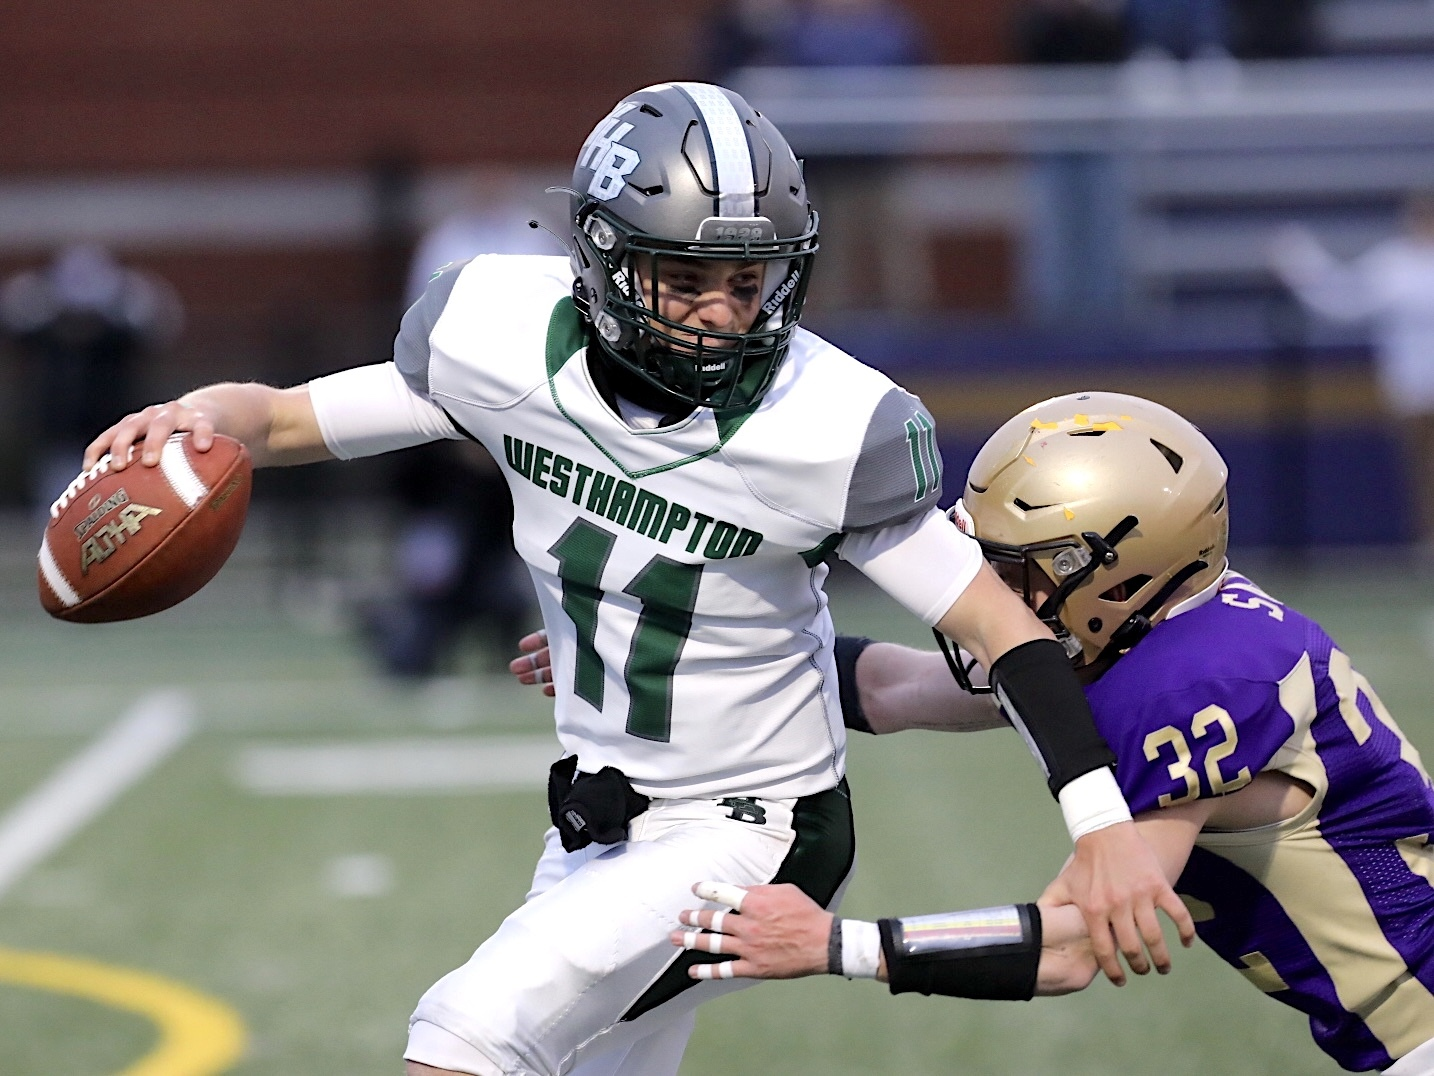 Westhampton Beach senior quarterback Christian Capuano attempts to make a play while evading Sayville's Charlie Sands.